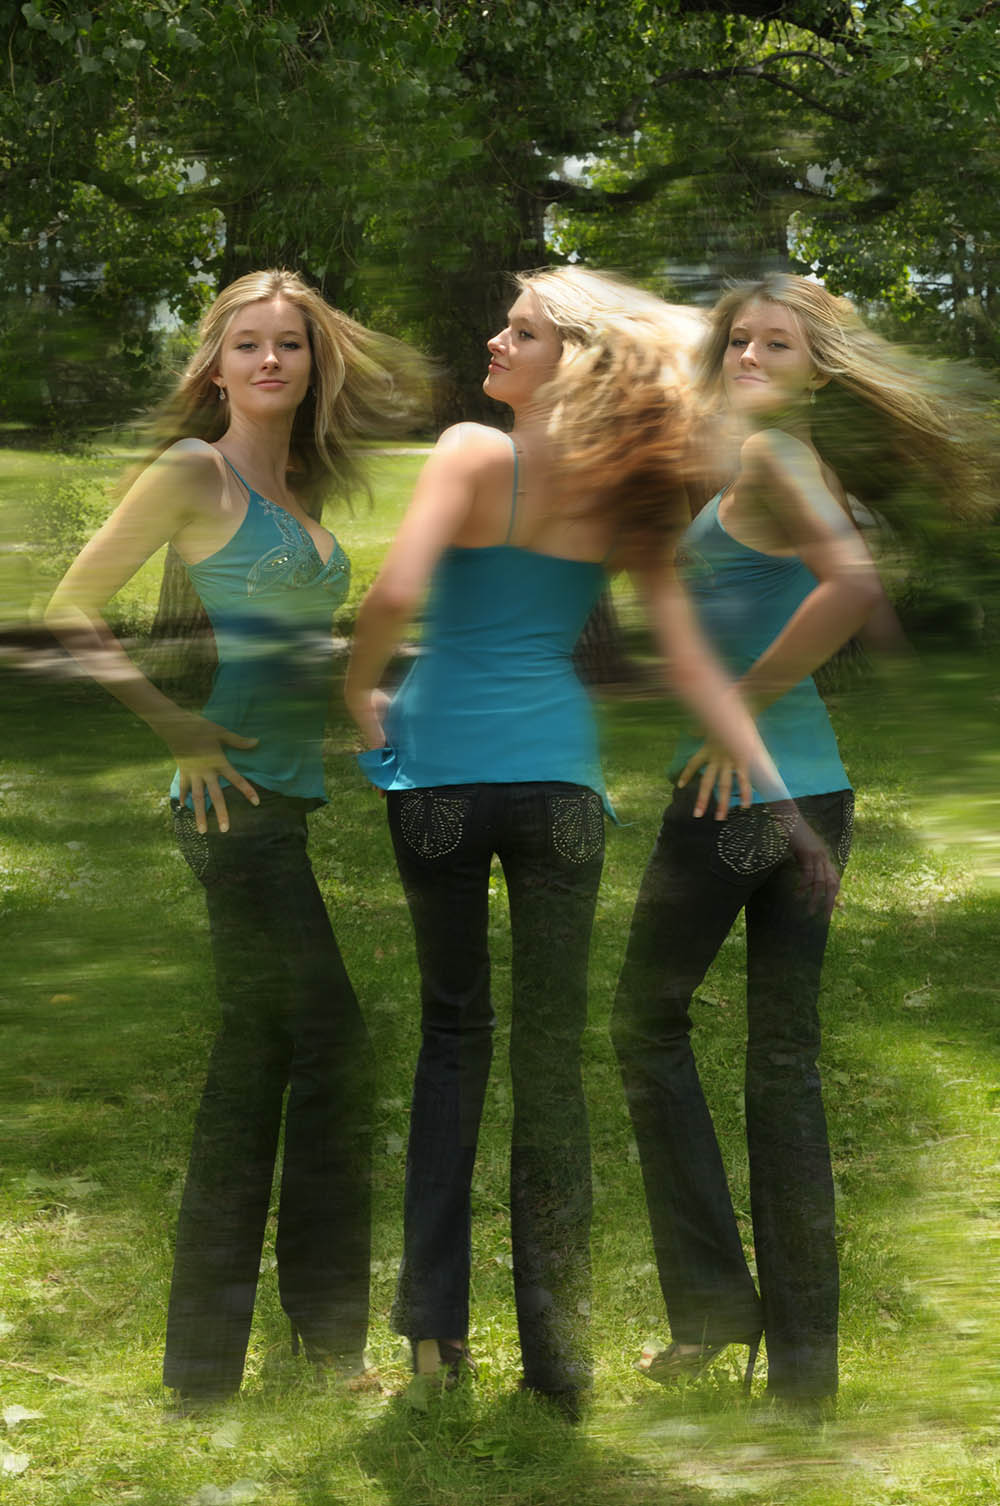 Multiple exposure jeans fashion photo